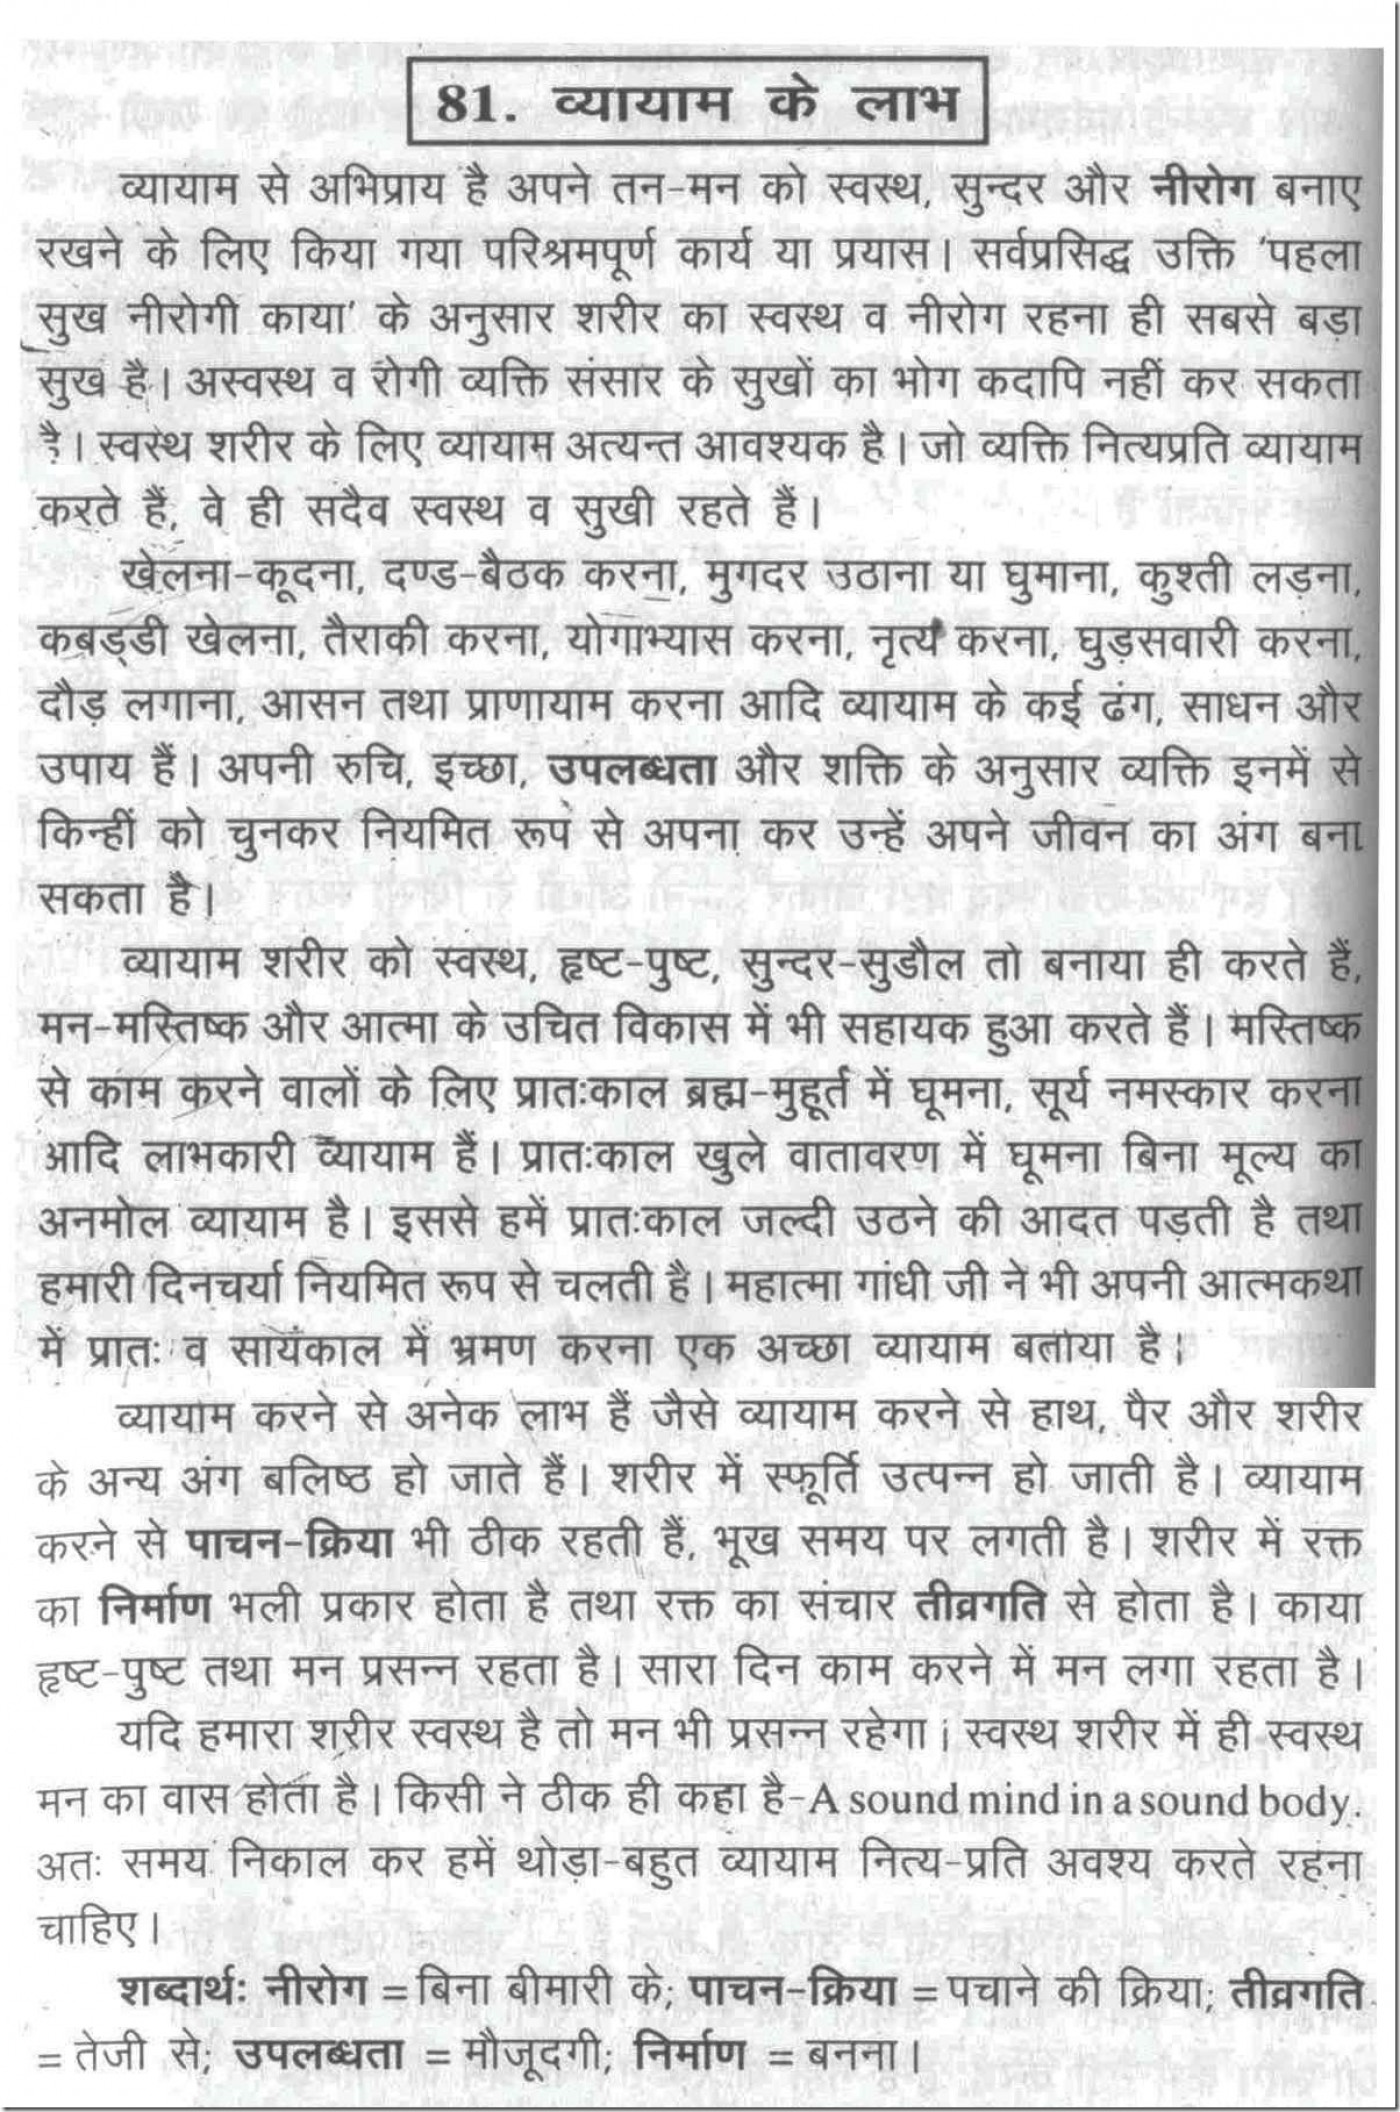 011 2563478896 Essay On Health And Fitness Through Food Good Habits In Hindi Exceptional Reading Habit Wikipedia 1400